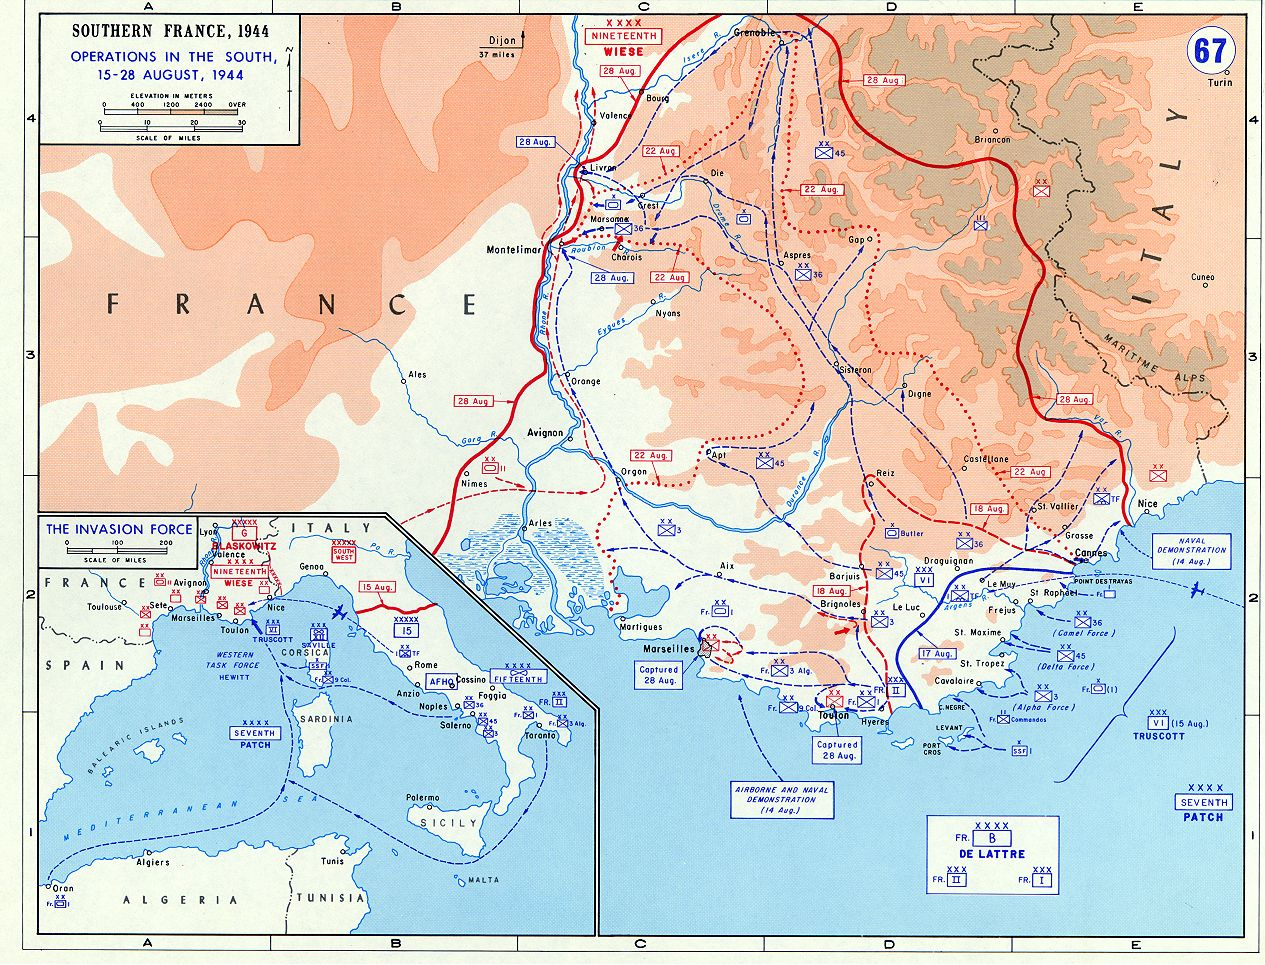 Map Map Of Southern France During Operation Dragoon Aug - Us ww2 map